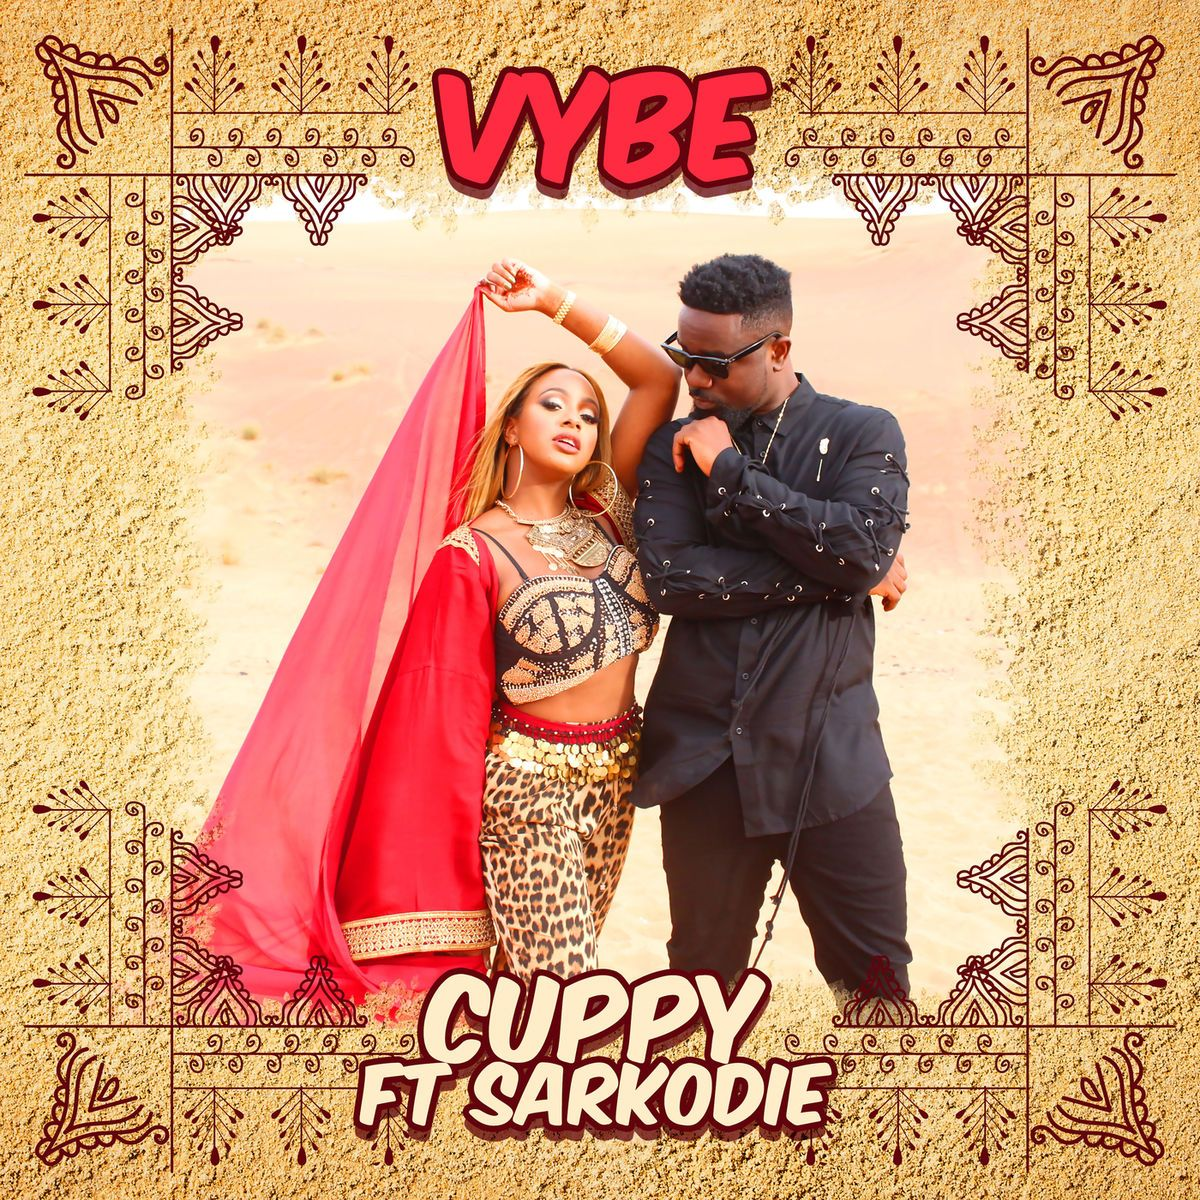 dj-cuppy-drops-music-vybe-featuring-sarkodie-just-in-time-for-easter-watch